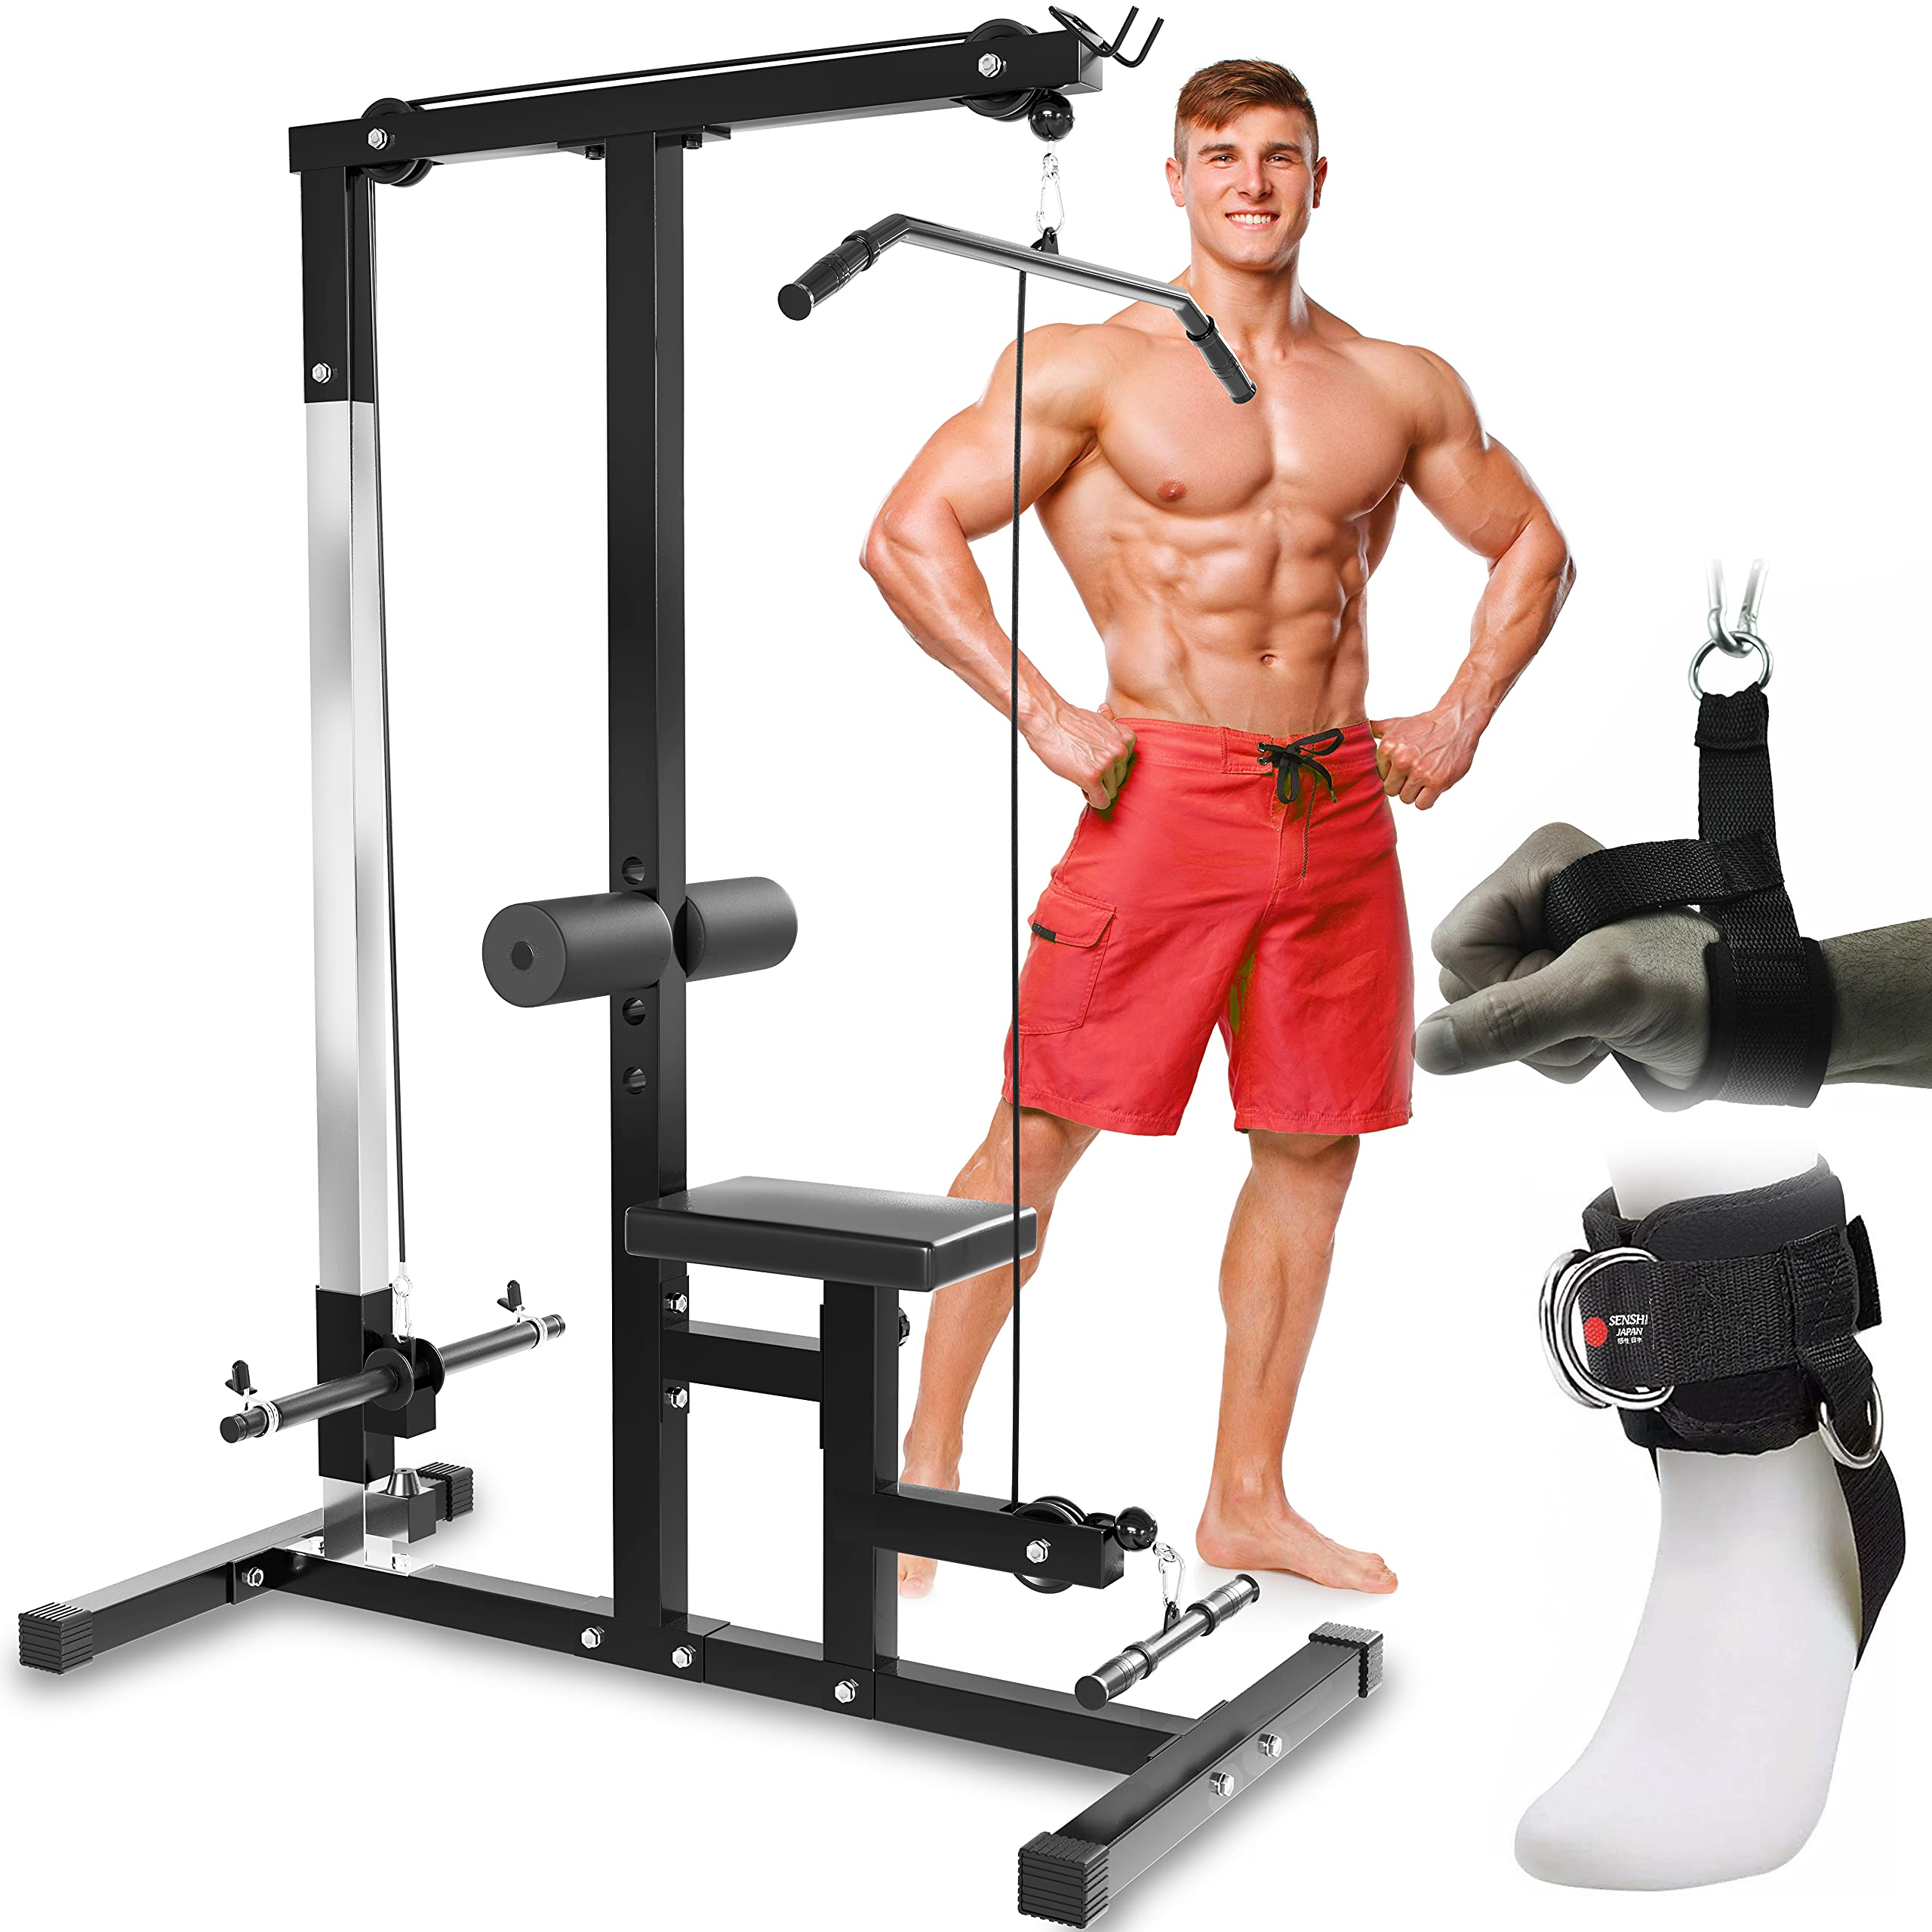 Senshi Japan Tricep Rope Pull Down Multi Gym Cable Attachment BodyBuilding